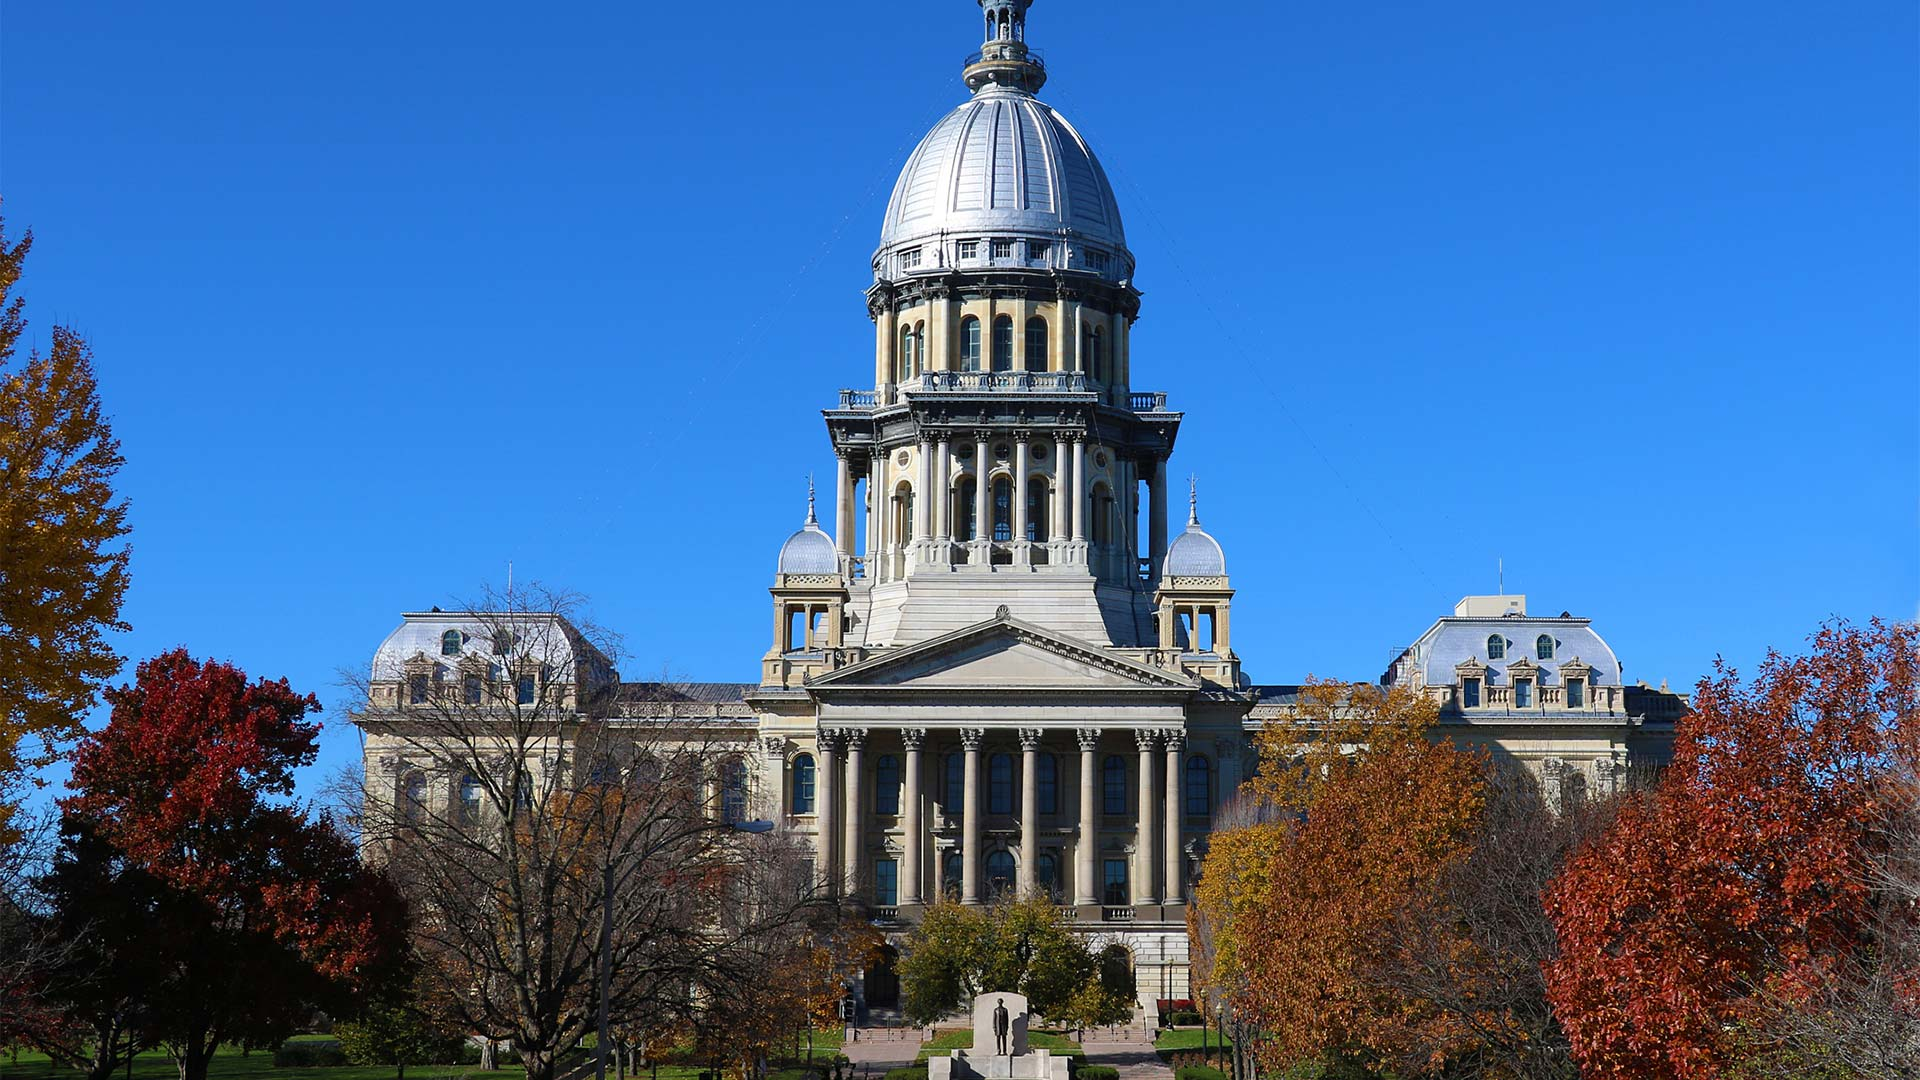 Mechanical Insulators LMCT   Illinois State House   Climate Jobs Illinois Declares Victory with S.B. 2408 signed into law.